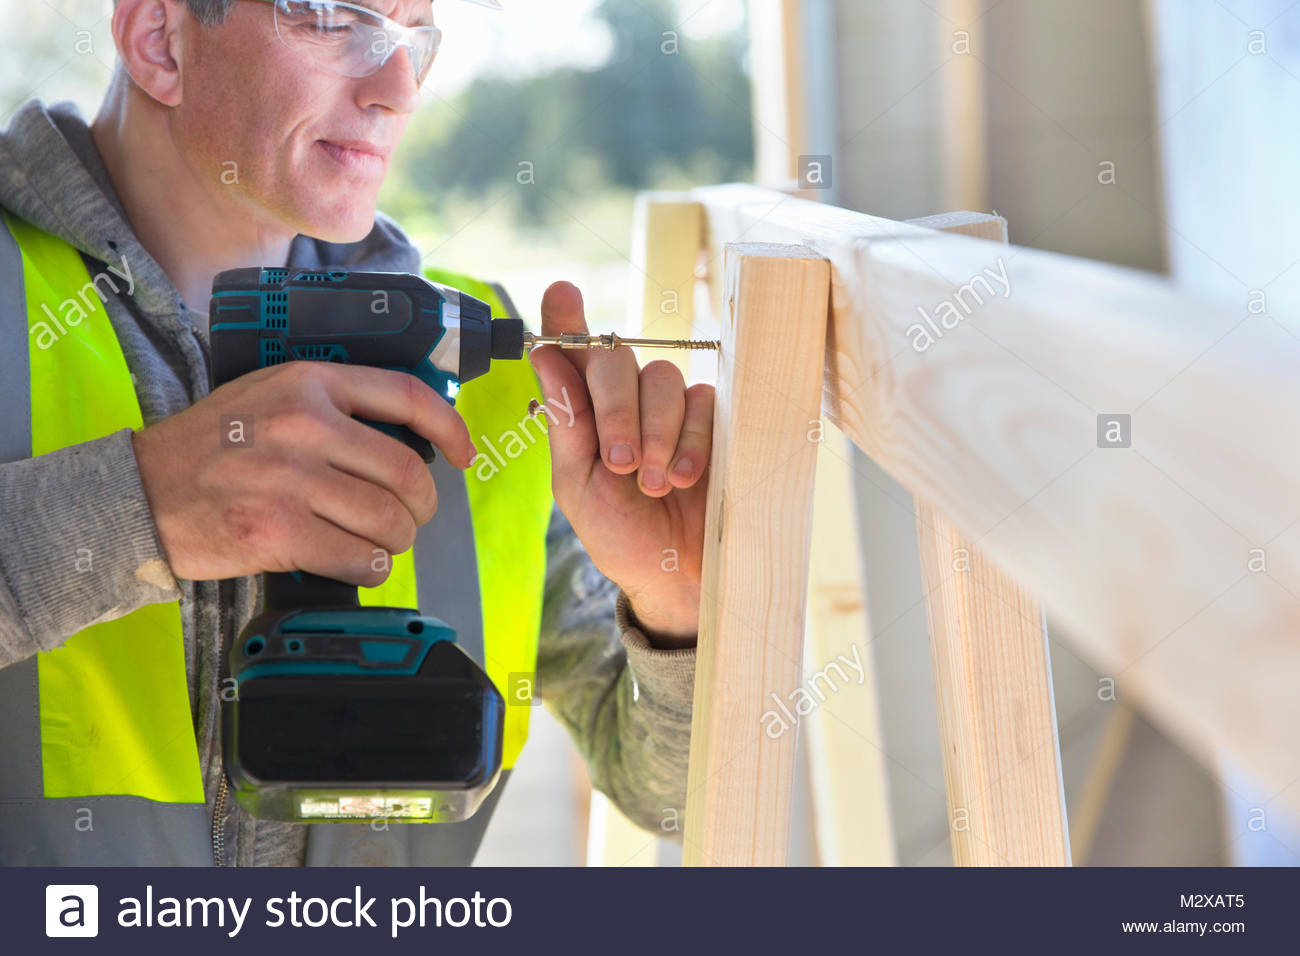 Carpenter using power drill to screw wood frame together on construction site interior - Stock Image